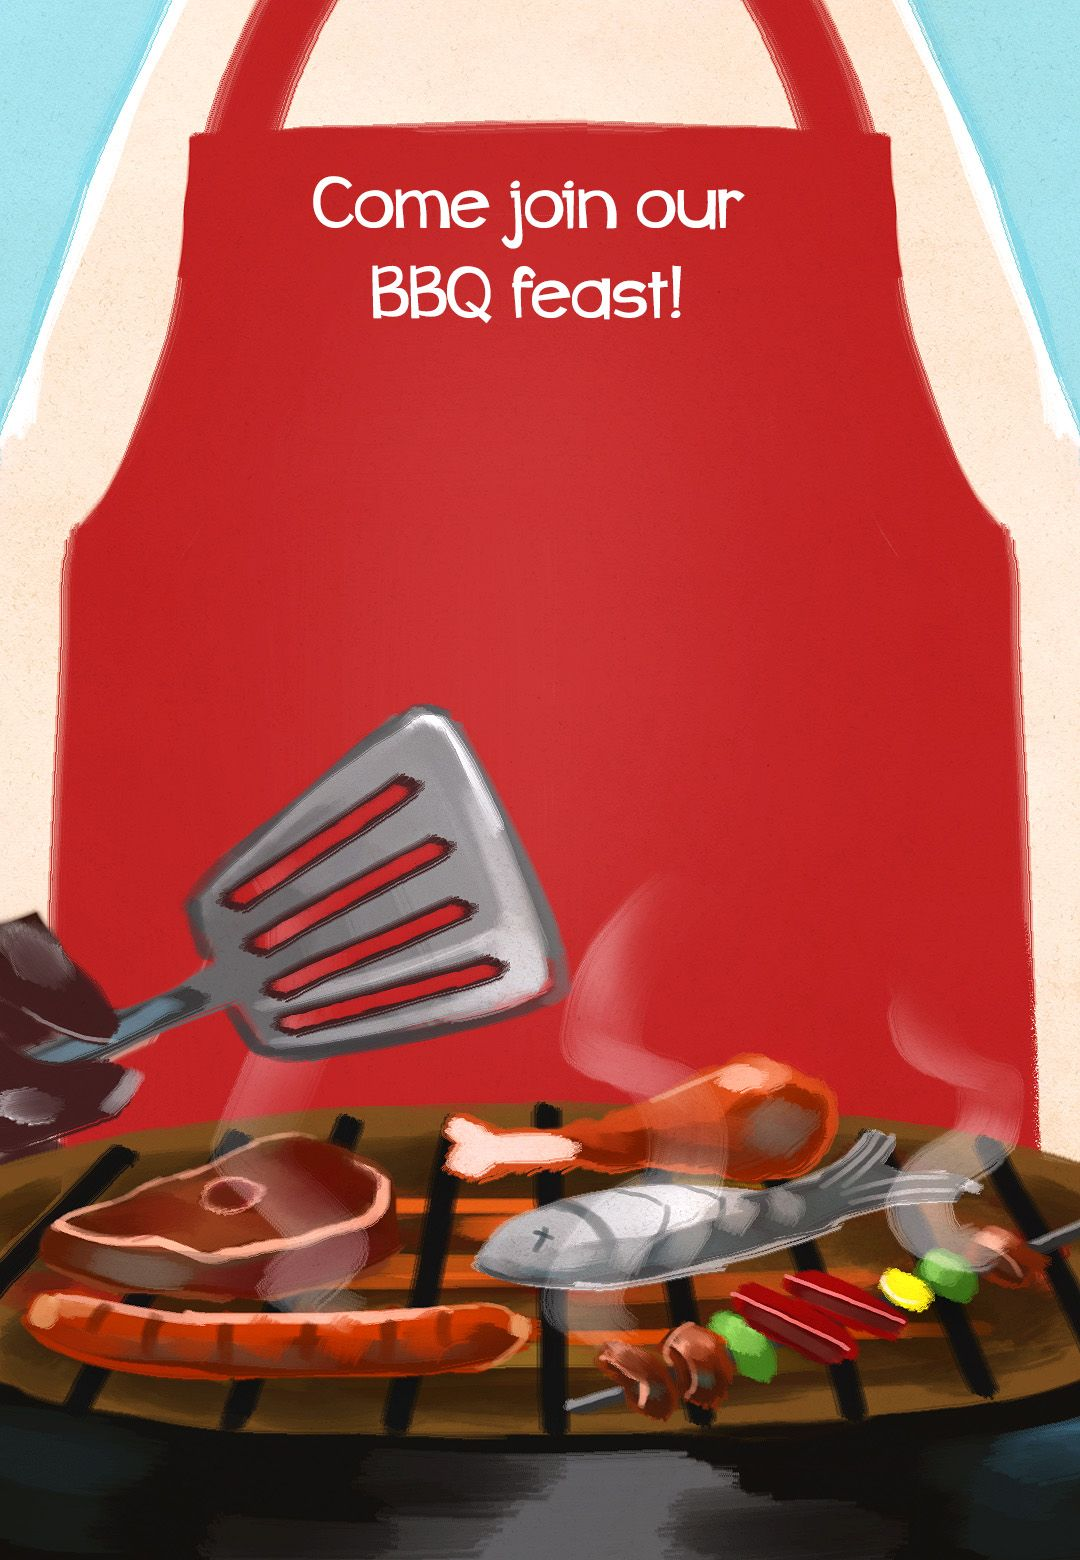 BBQ Feast - Free Printable Party Invitation Template | Greetings ...